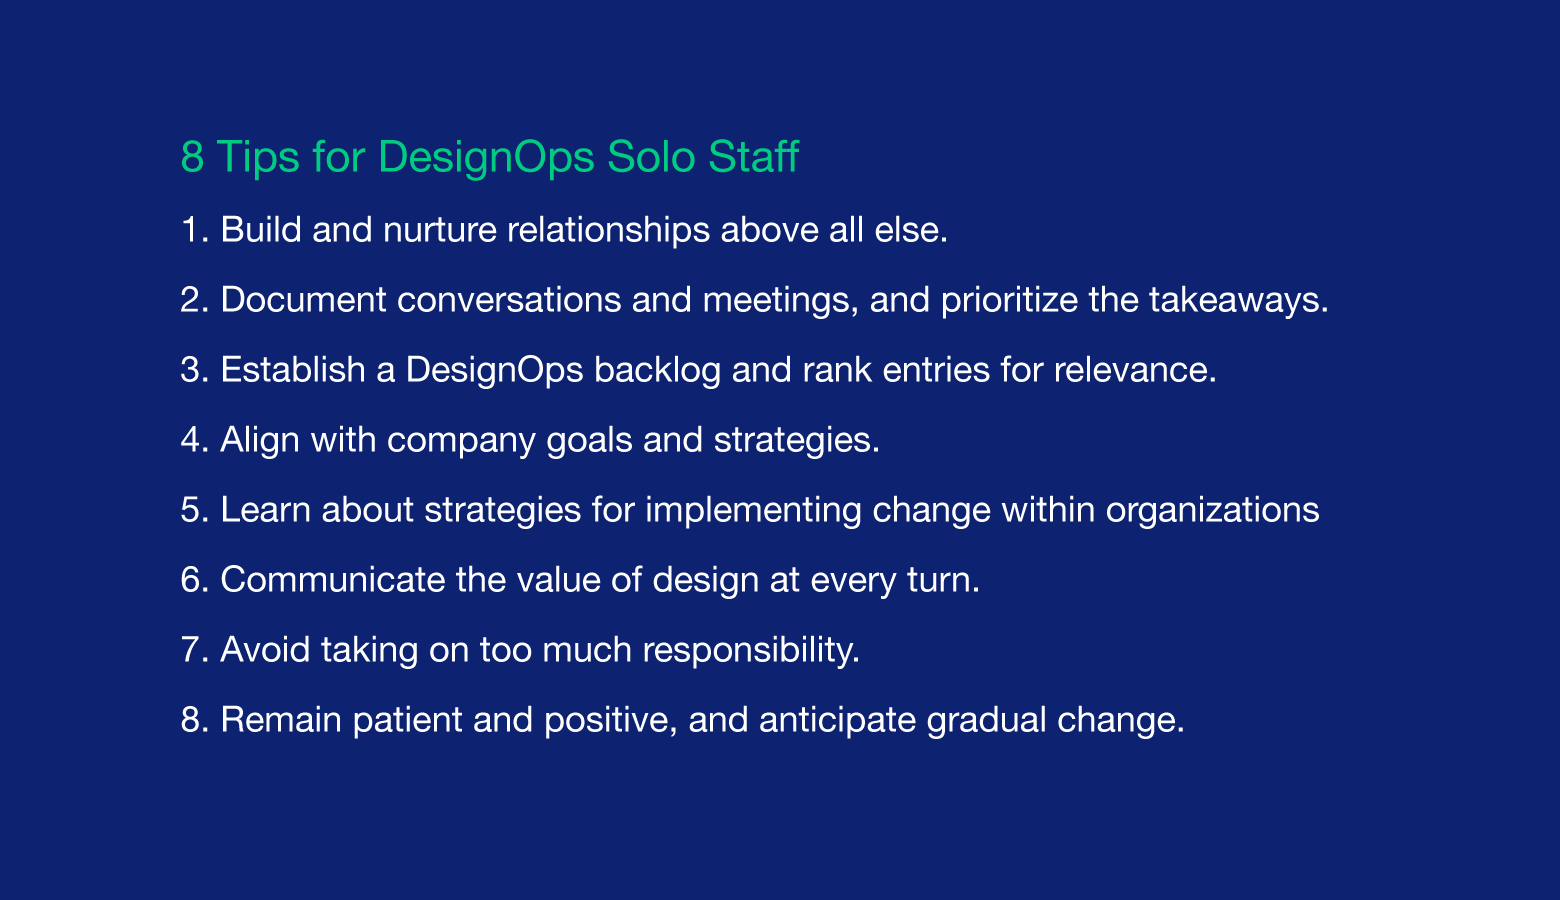 DesignOps solo staff need patience and determination.